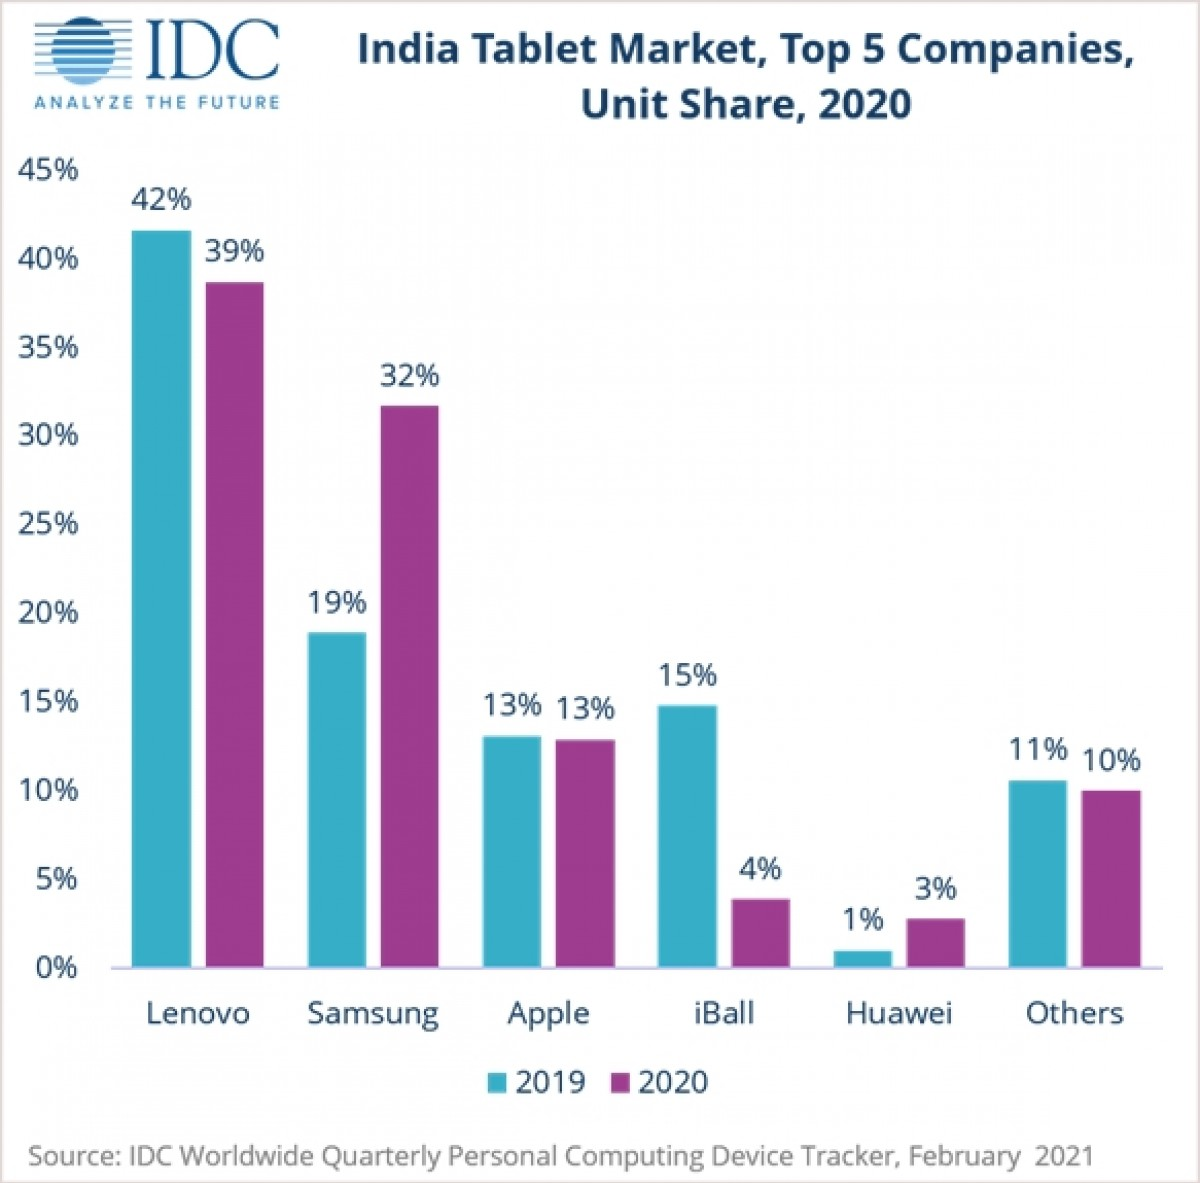 Sales of tablets in India increased 14.7% in 2020 due to demand for e-learning